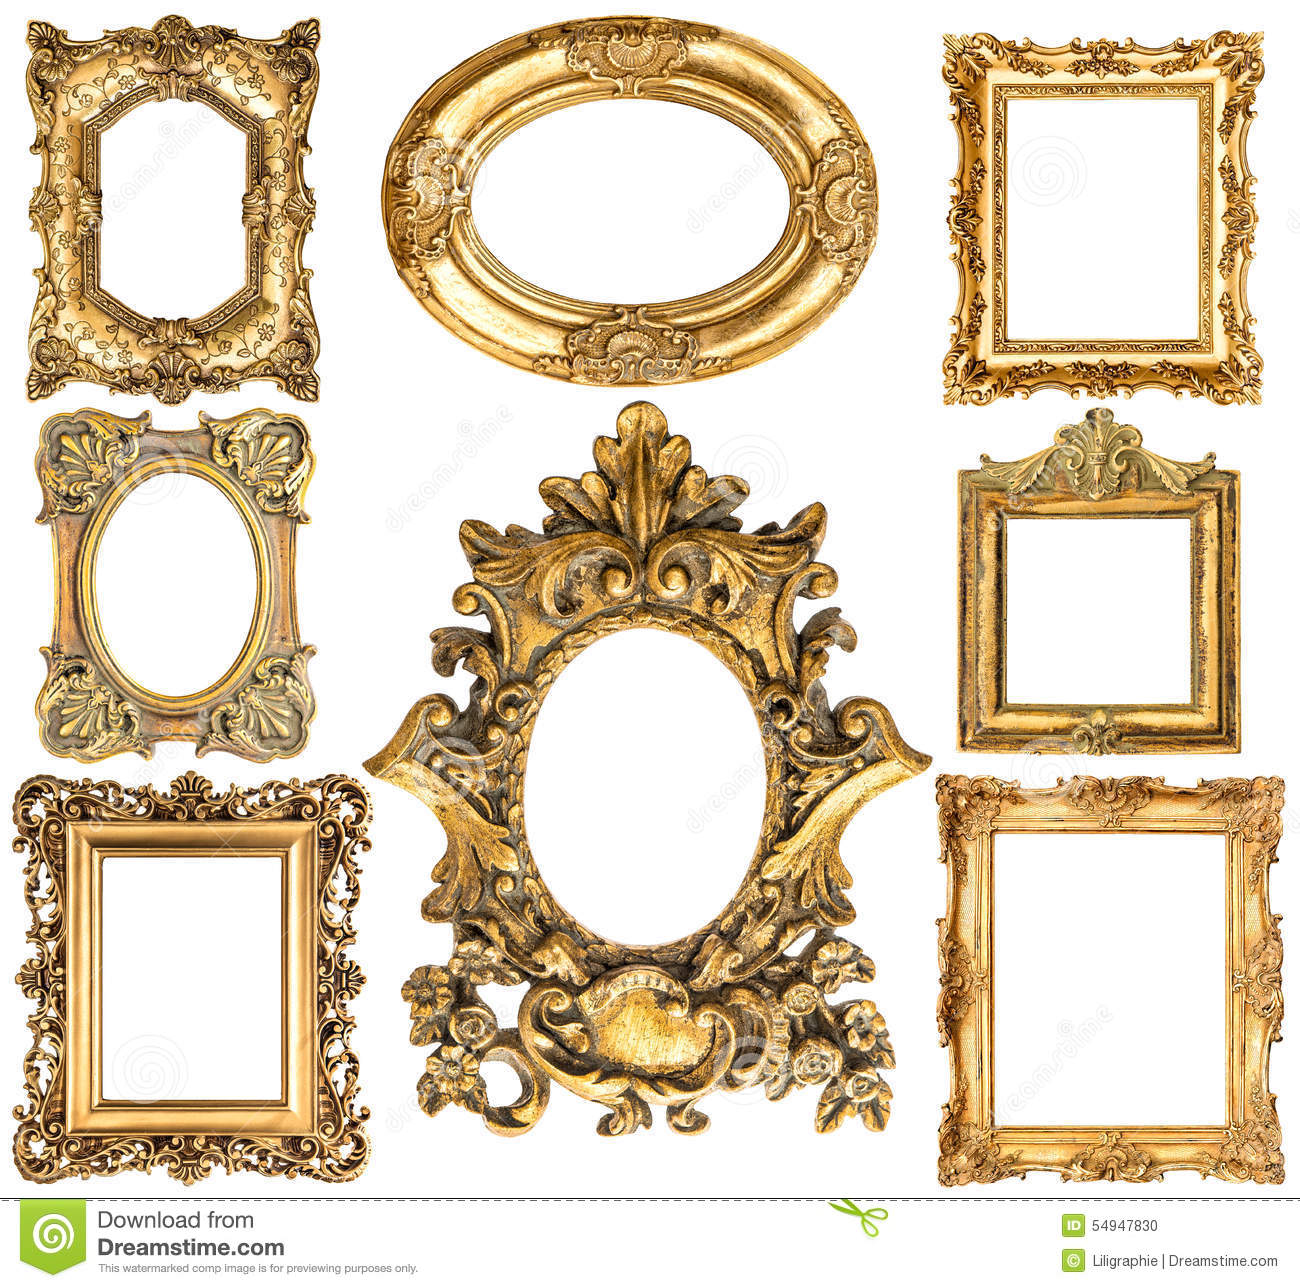 golden frames baroque style antique objects vintage collection stock photo image 54947830. Black Bedroom Furniture Sets. Home Design Ideas